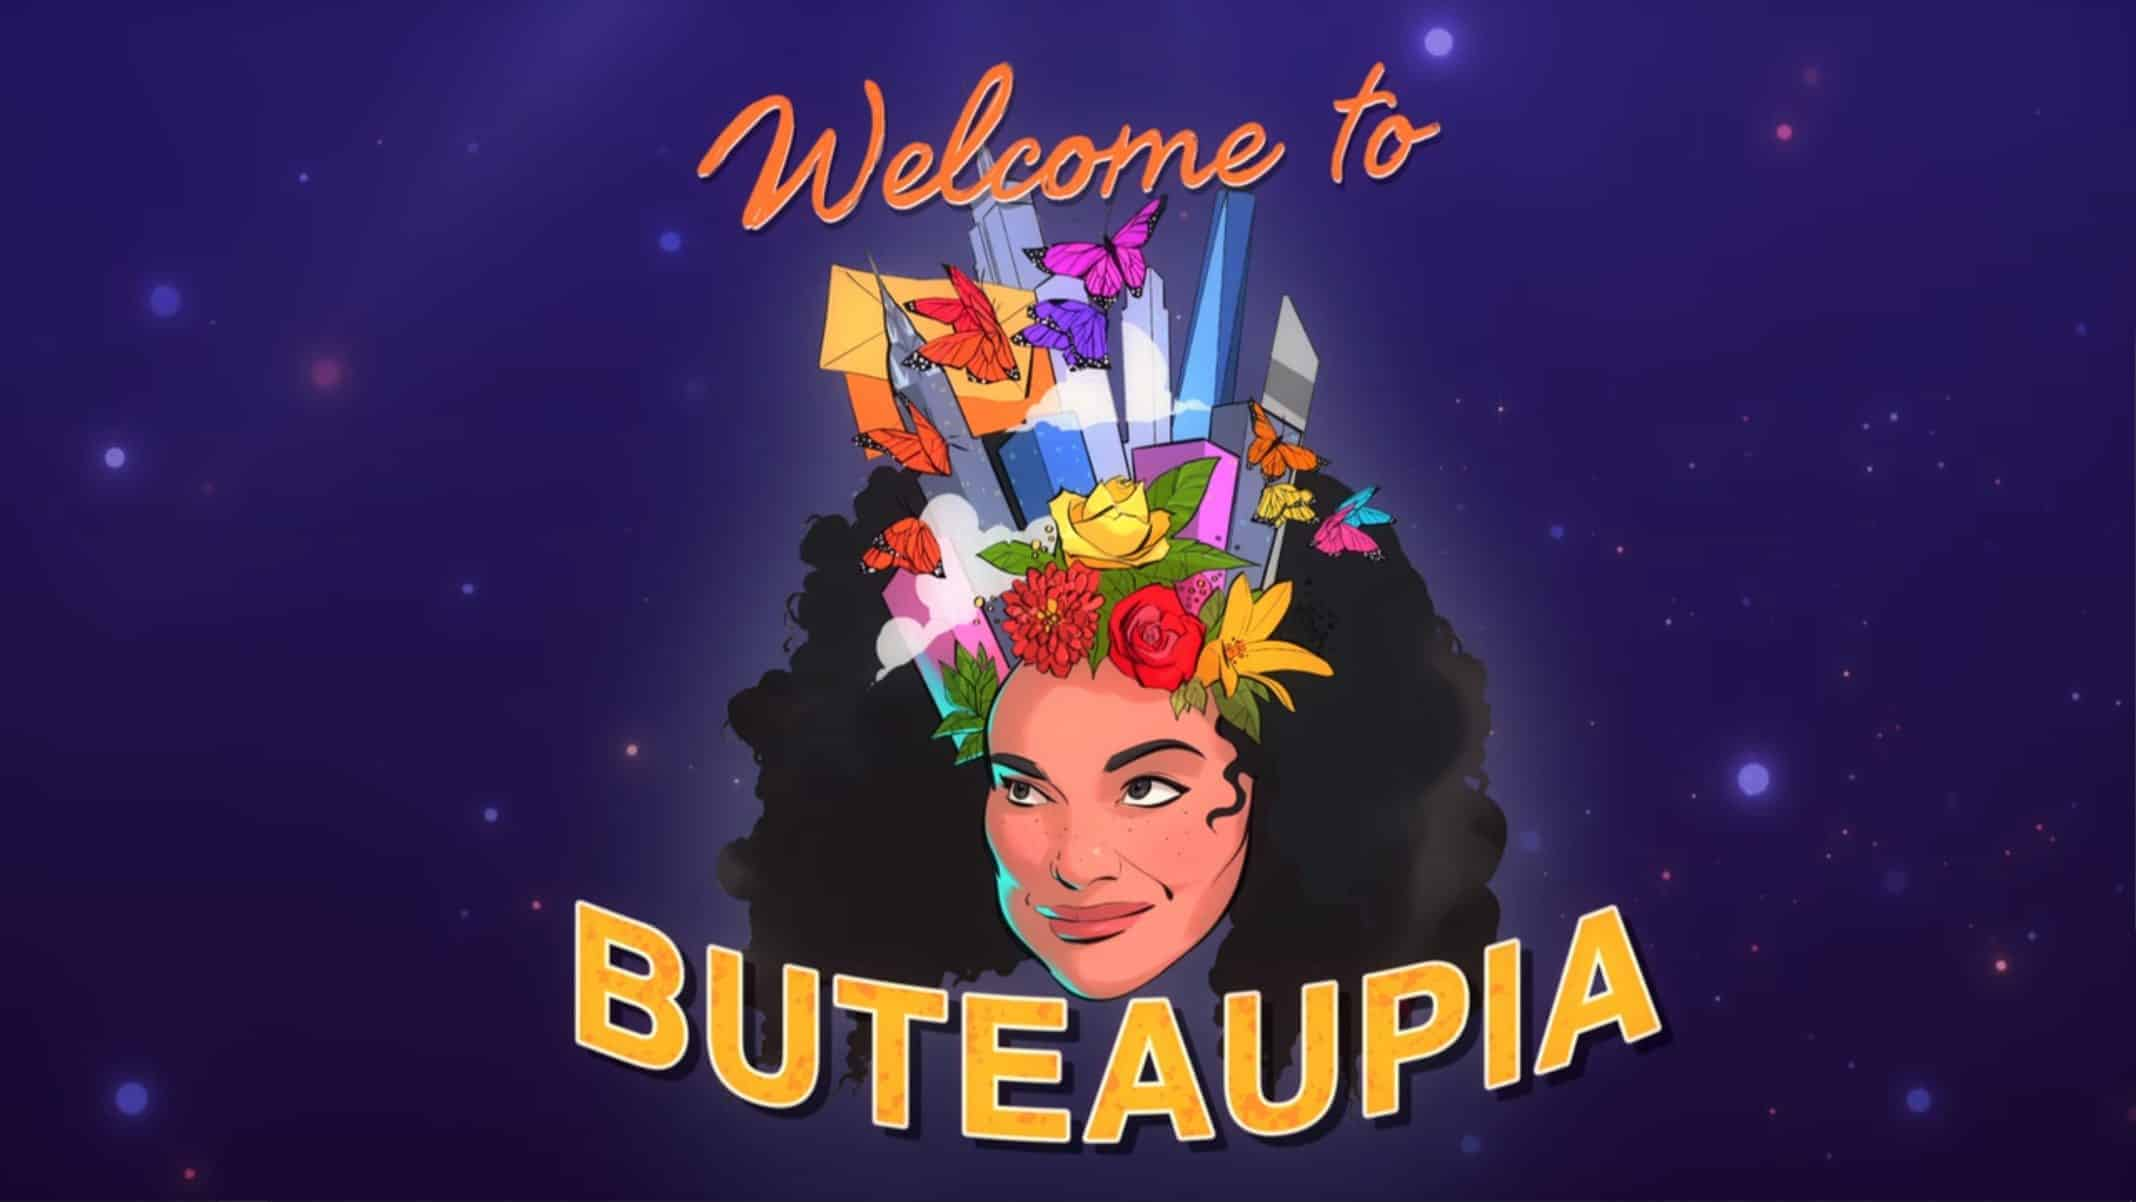 Title Card - Michelle Buteau Welcome to Buteaupia